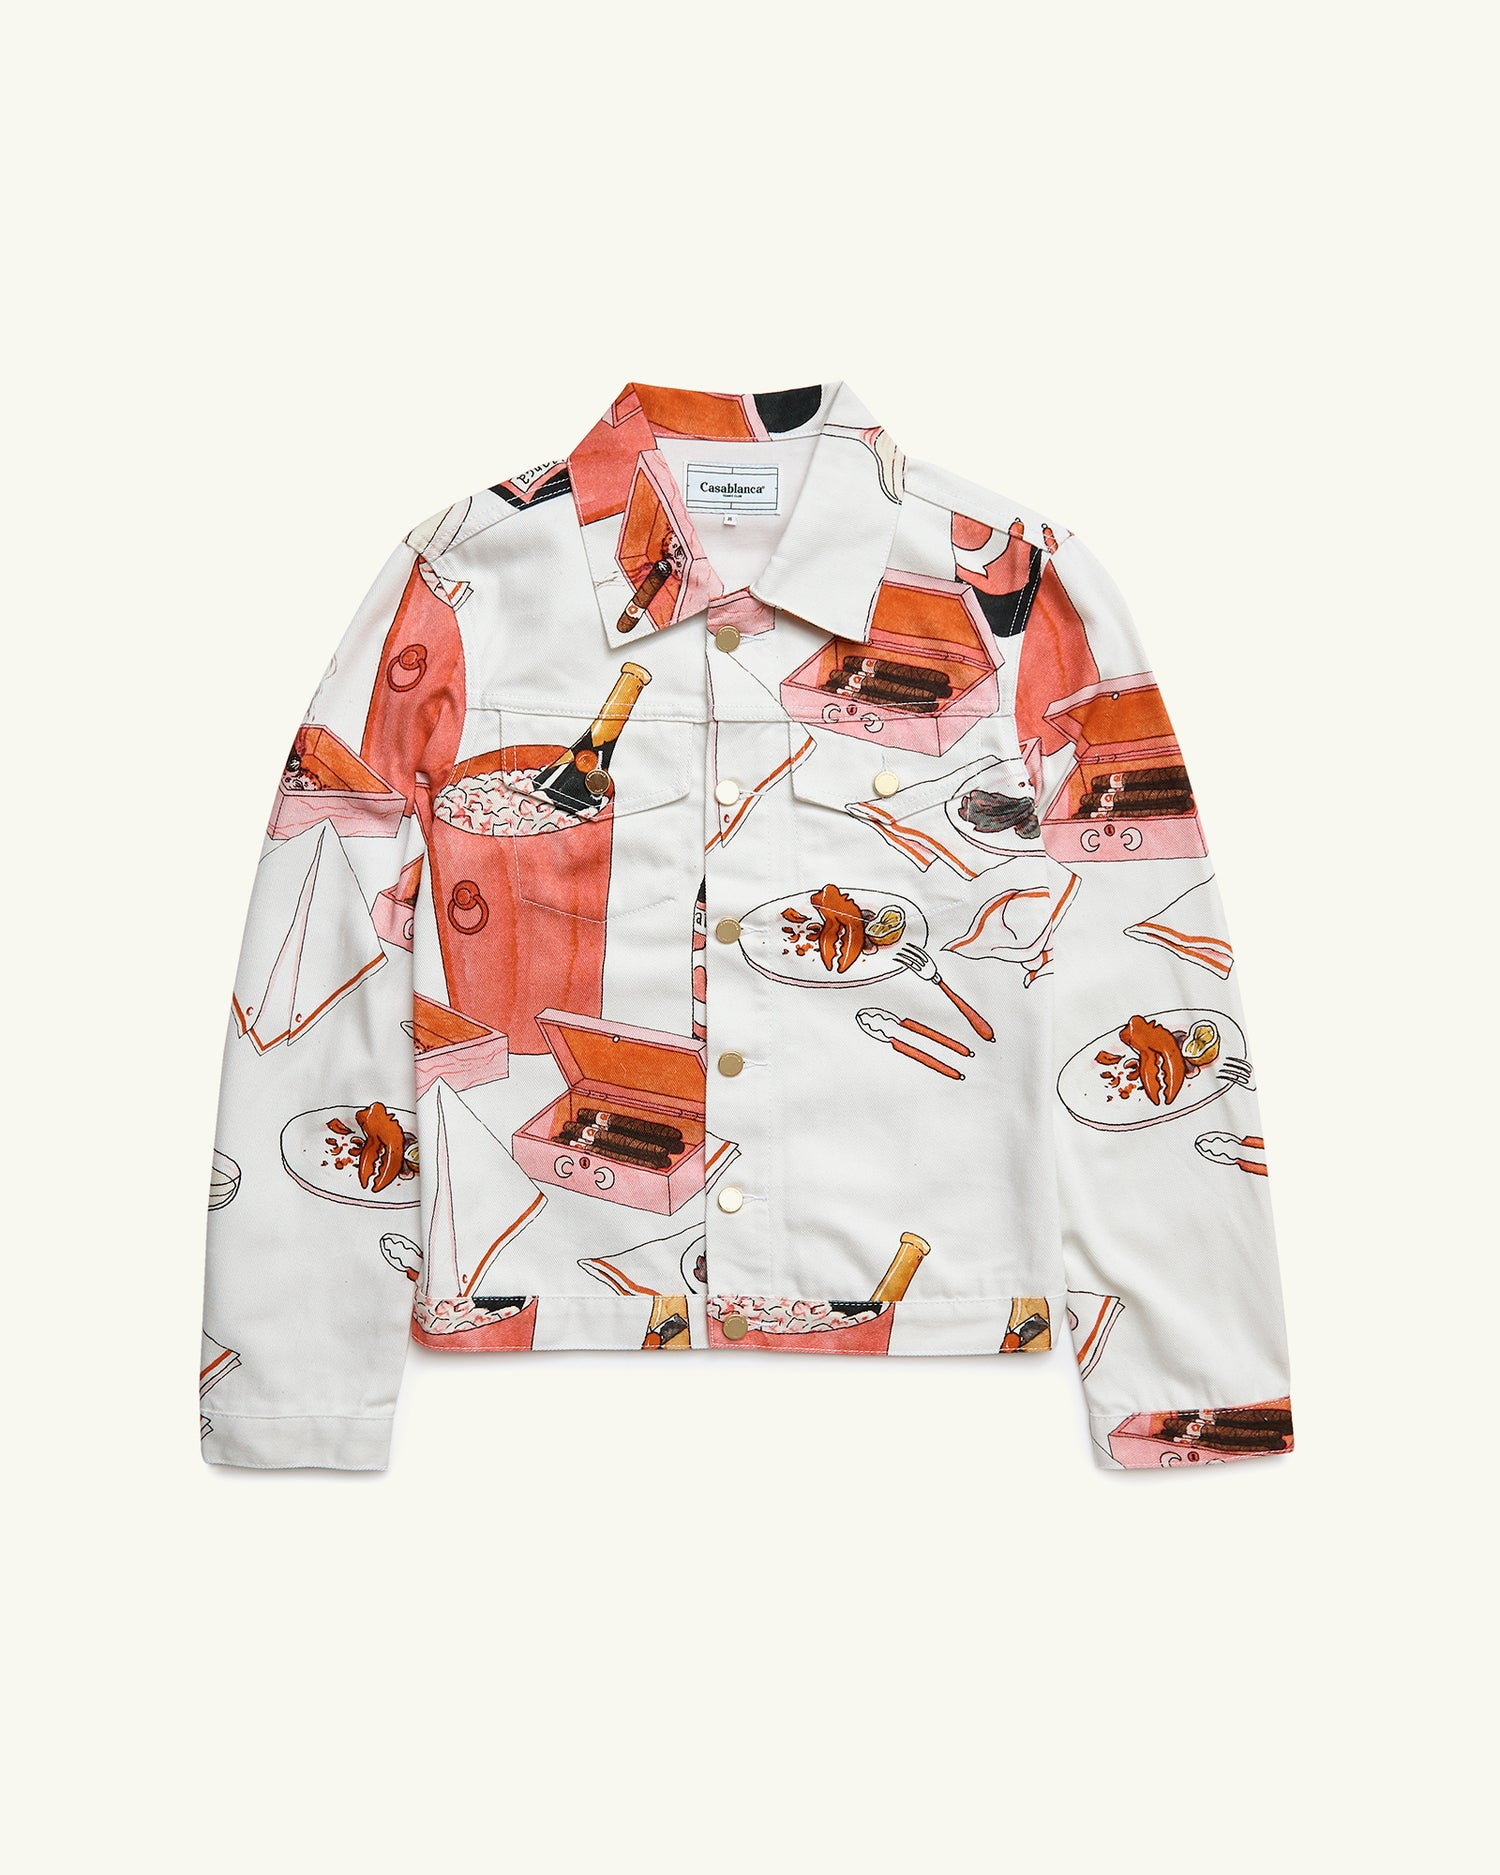 PRINTED DENIM JACKET CHAMPAGNE AND CIGARS WHITE